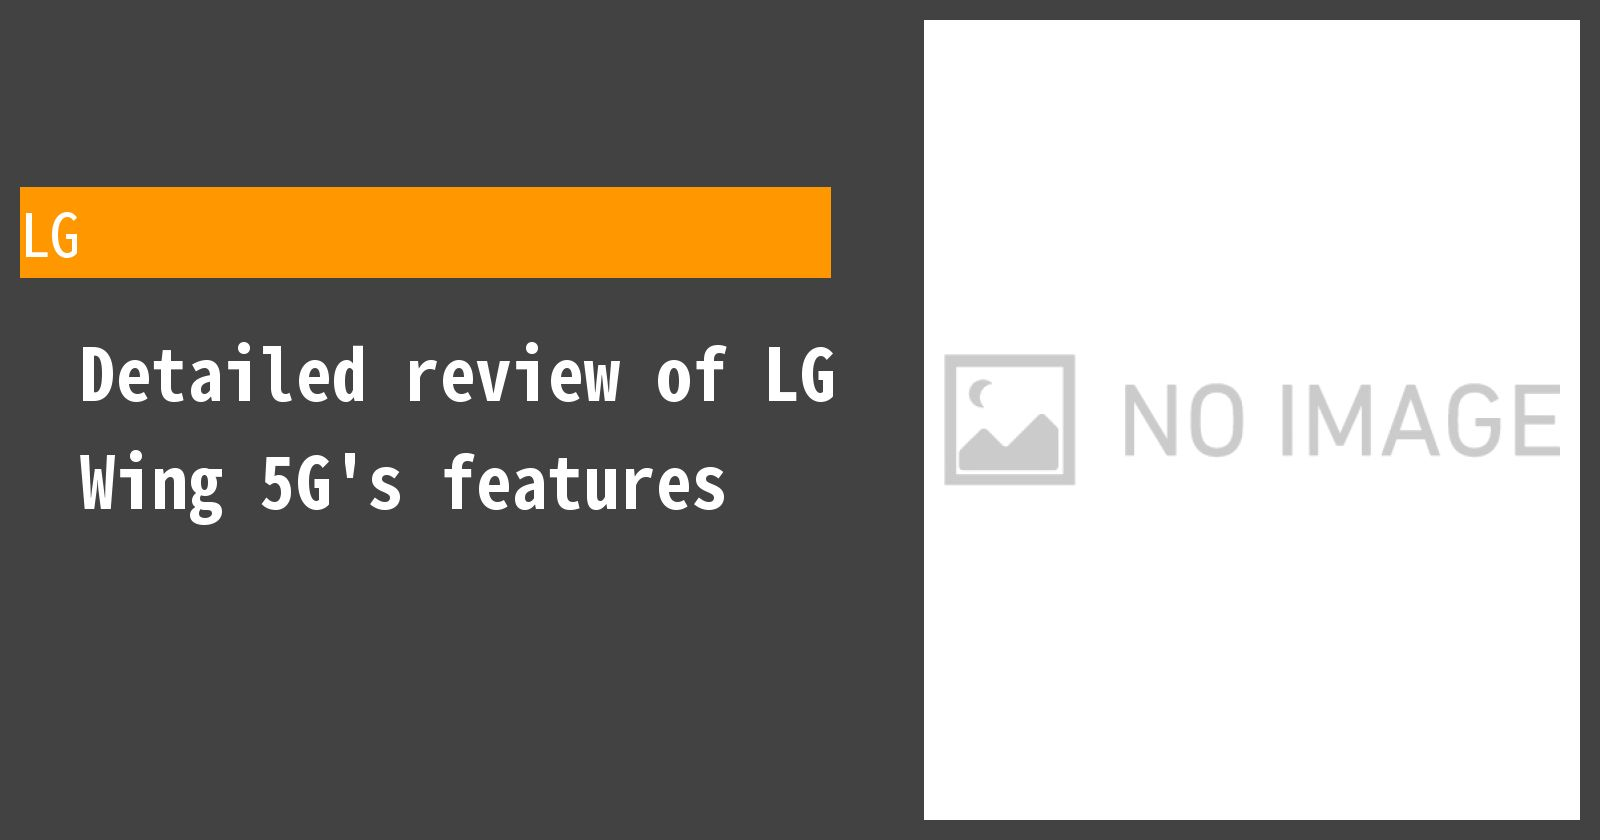 Detailed review of LG Wing 5G's features